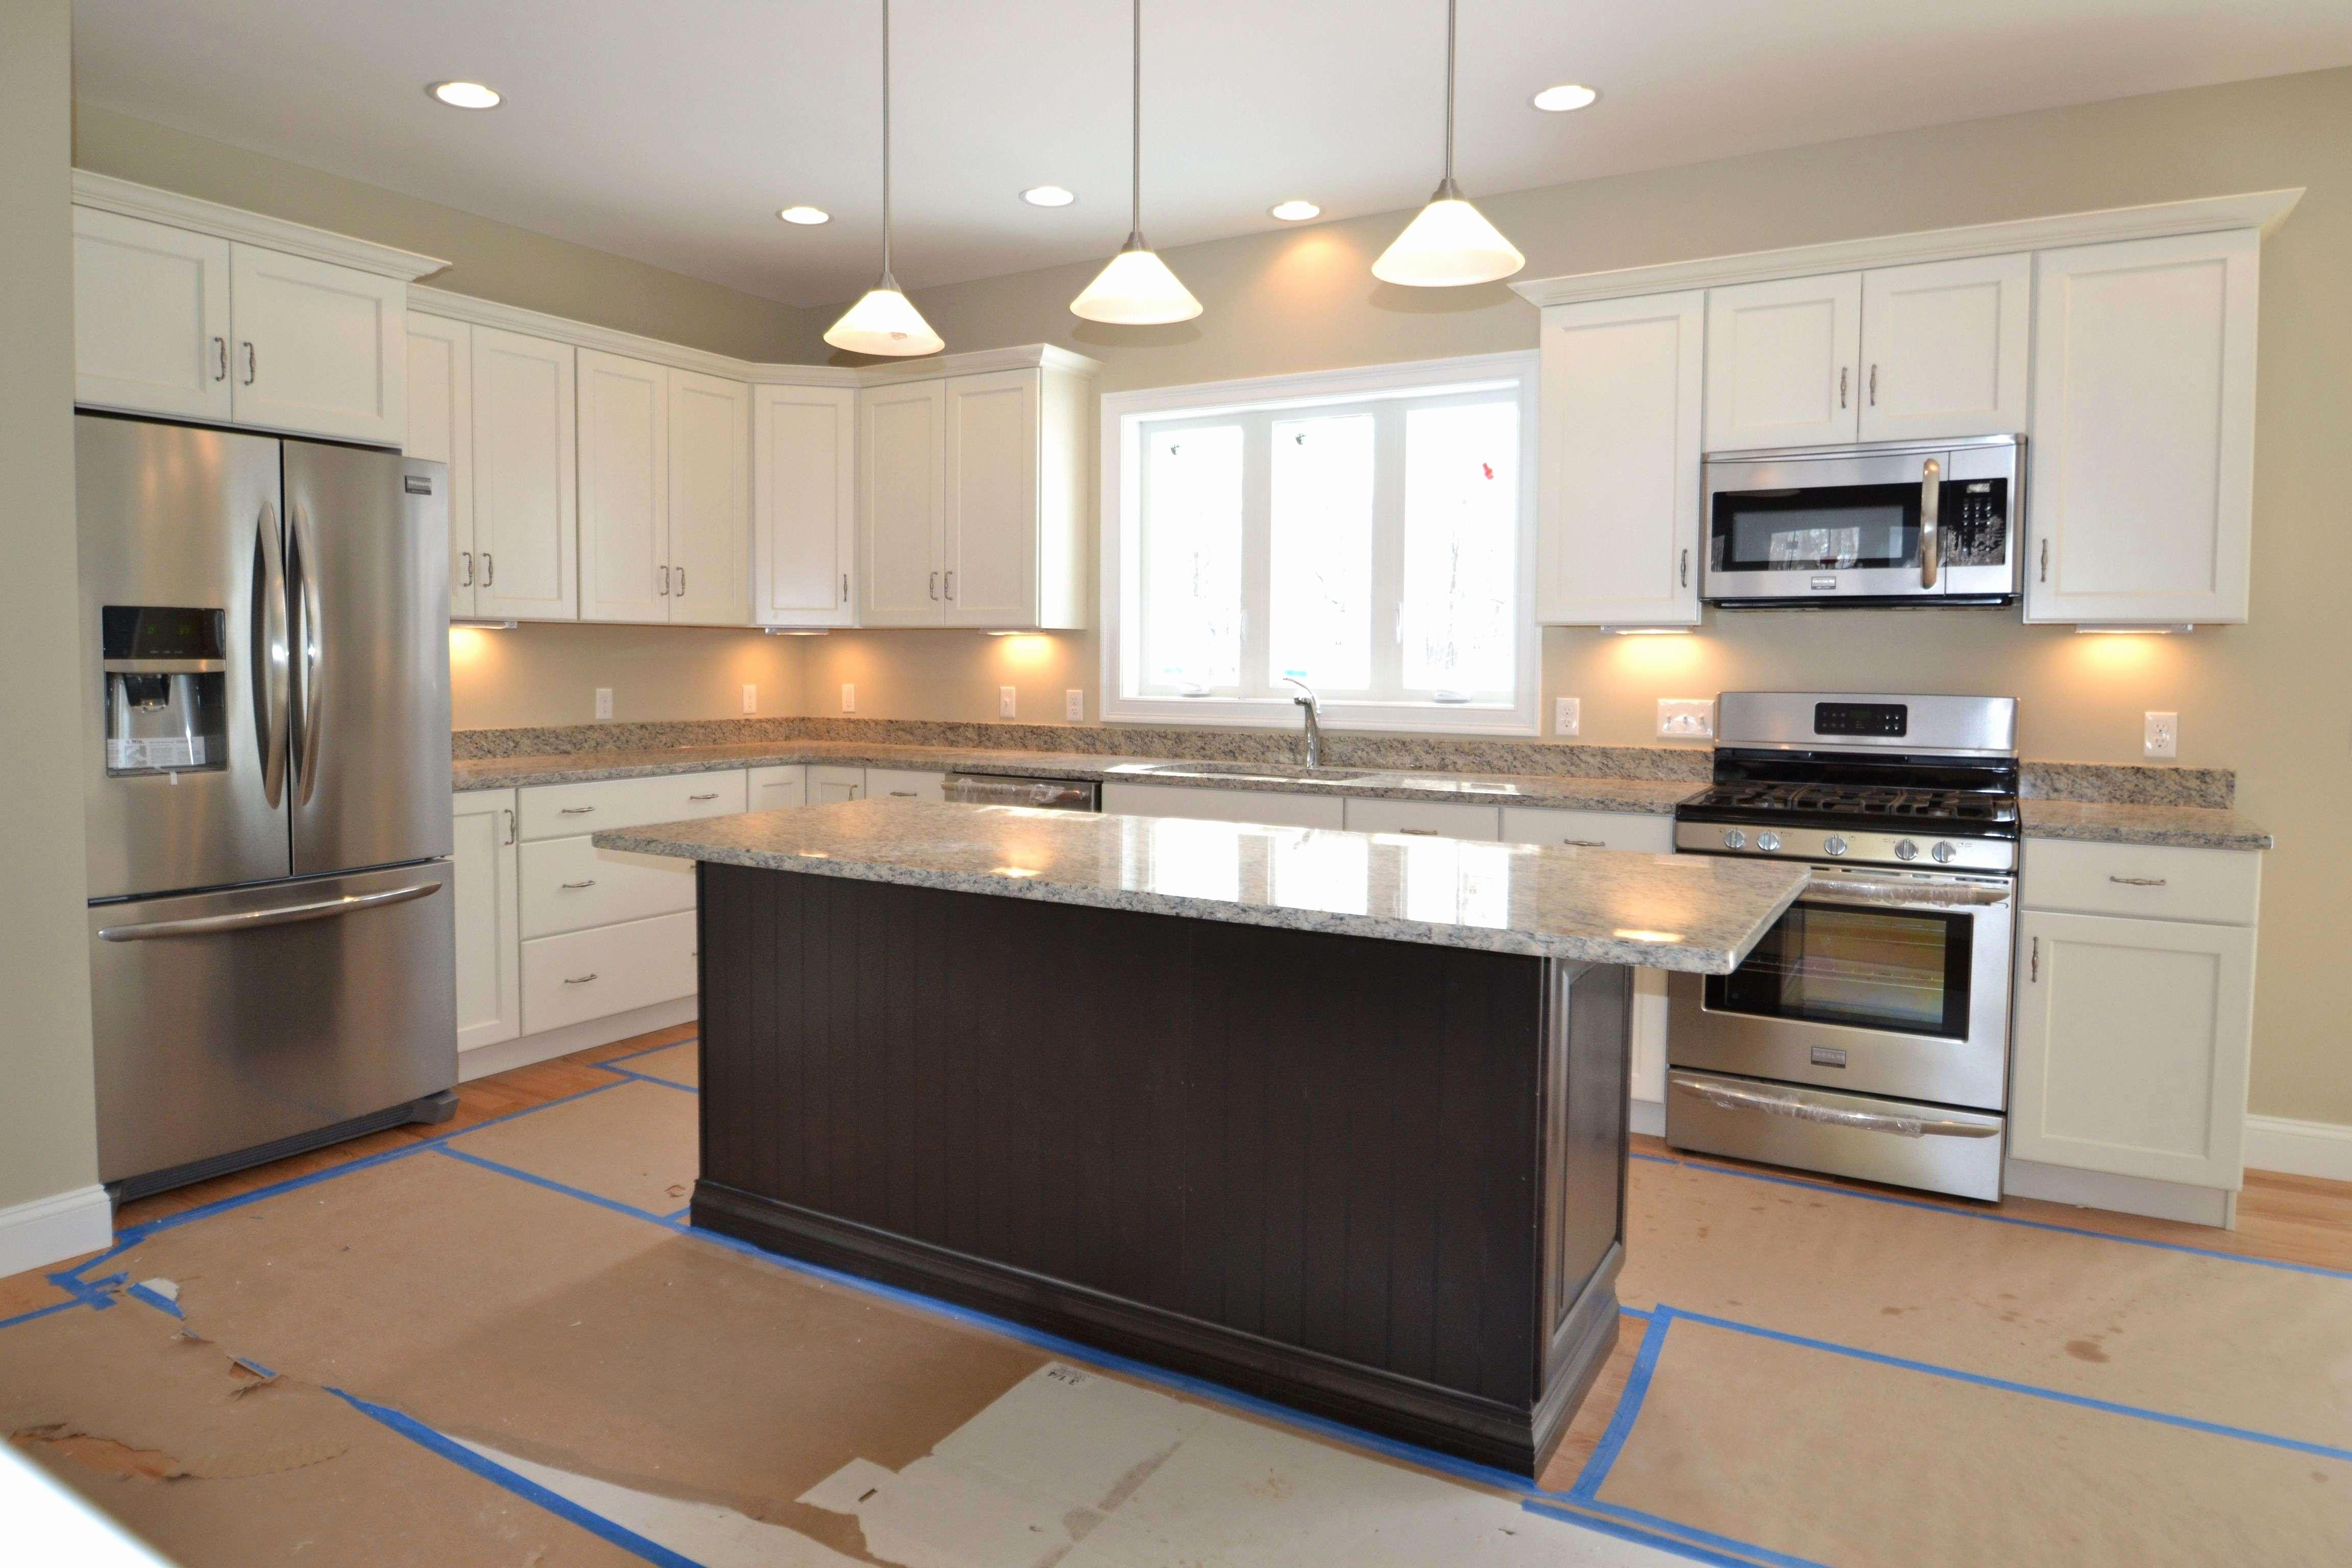 Lovely How To Measure Kitchen Cabinets Galley Kitchen Design Beautiful Kitchen Cabinets Kitchen Design Color